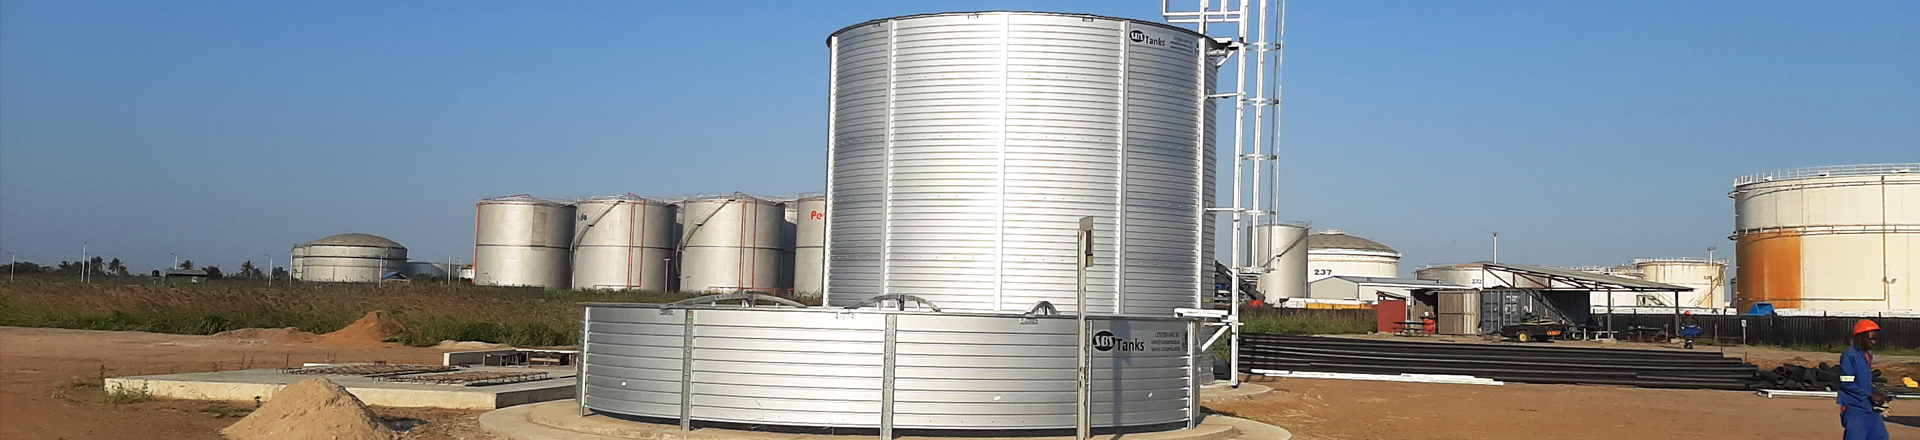 Cyclone water storage solutions